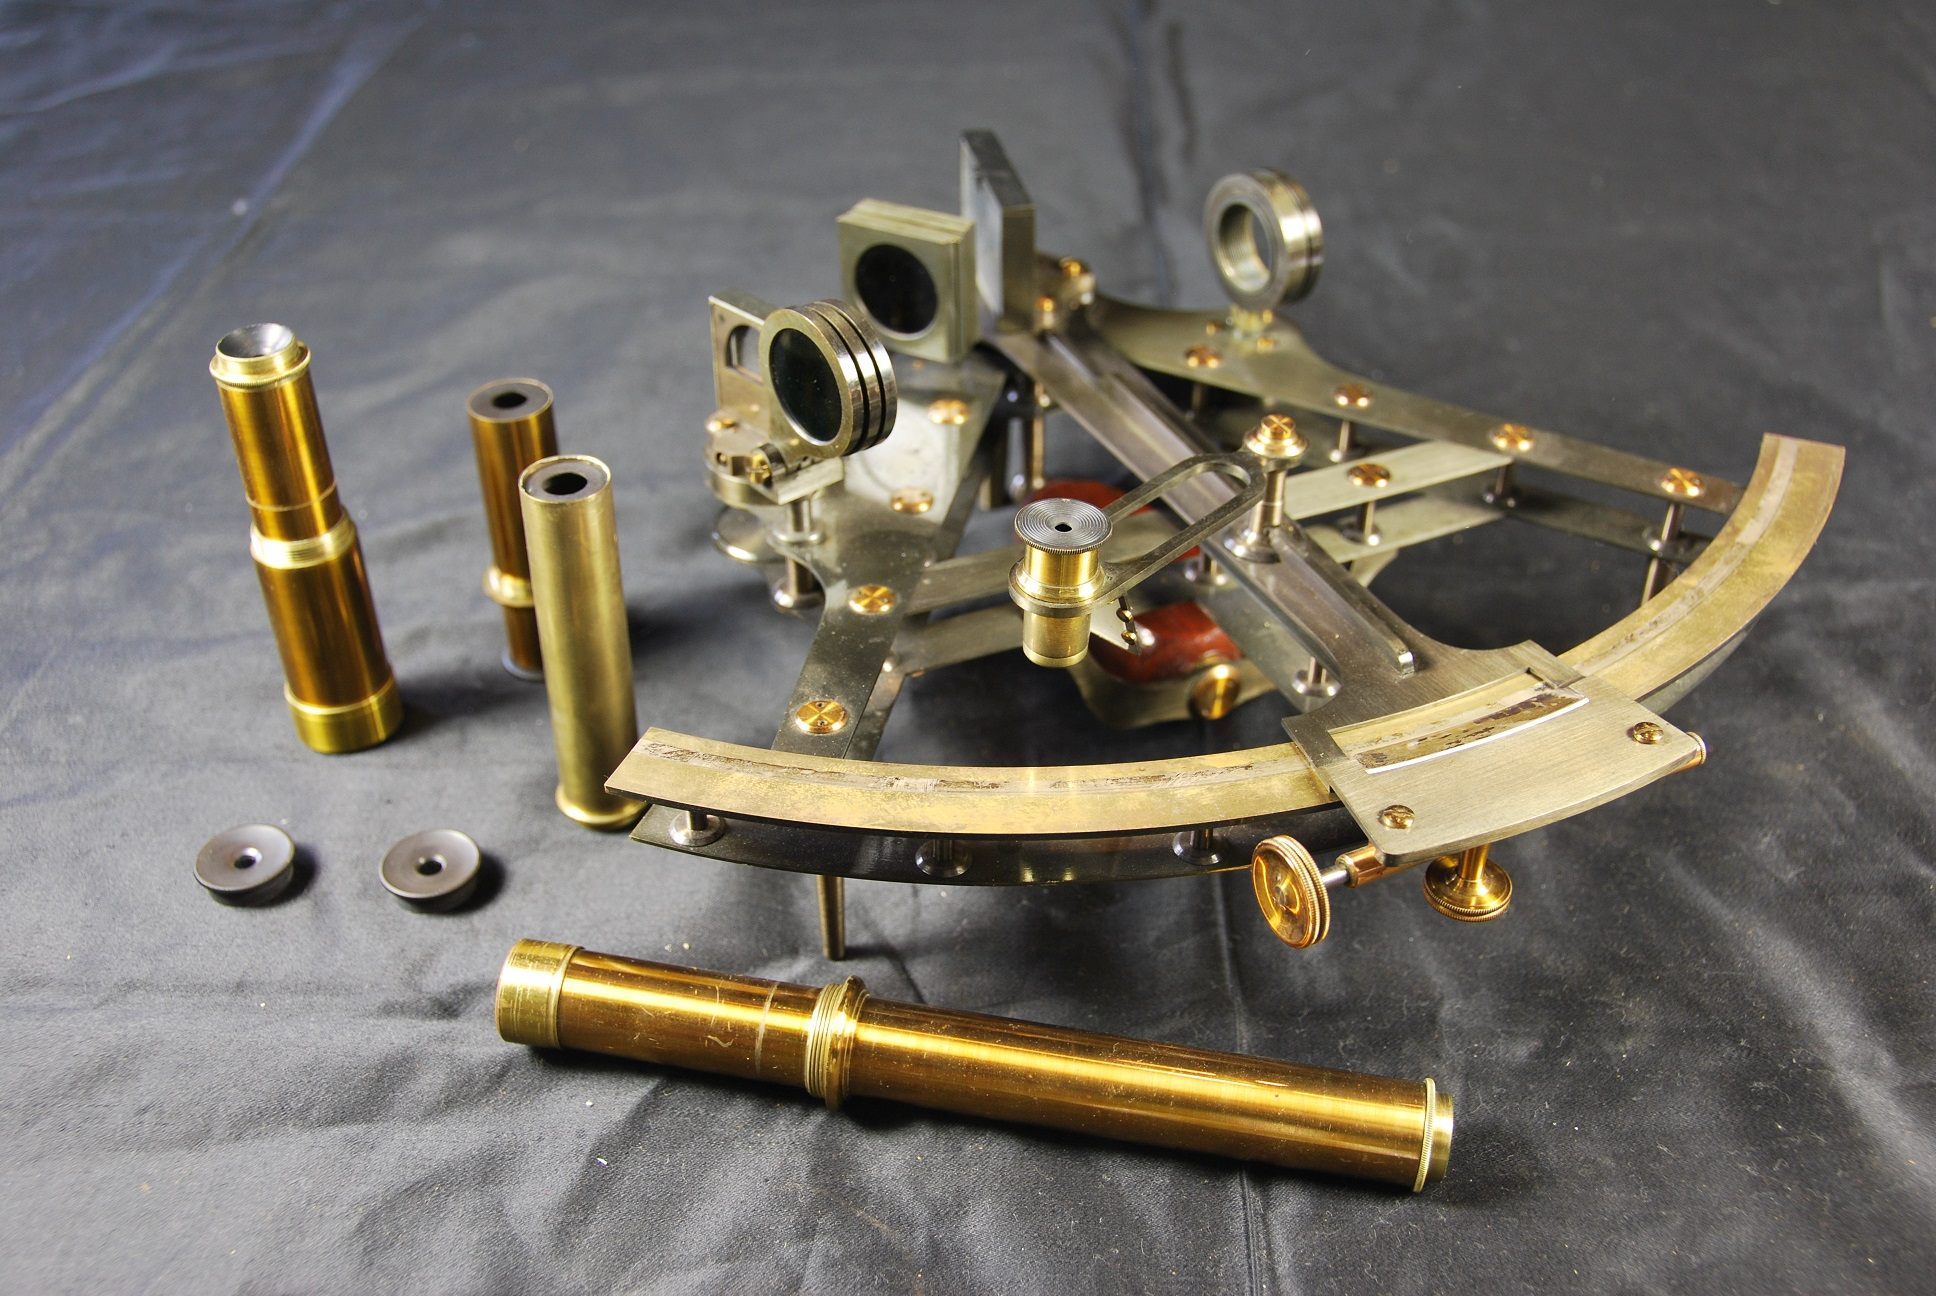 Victorian sextant and lens attachments lying on its side